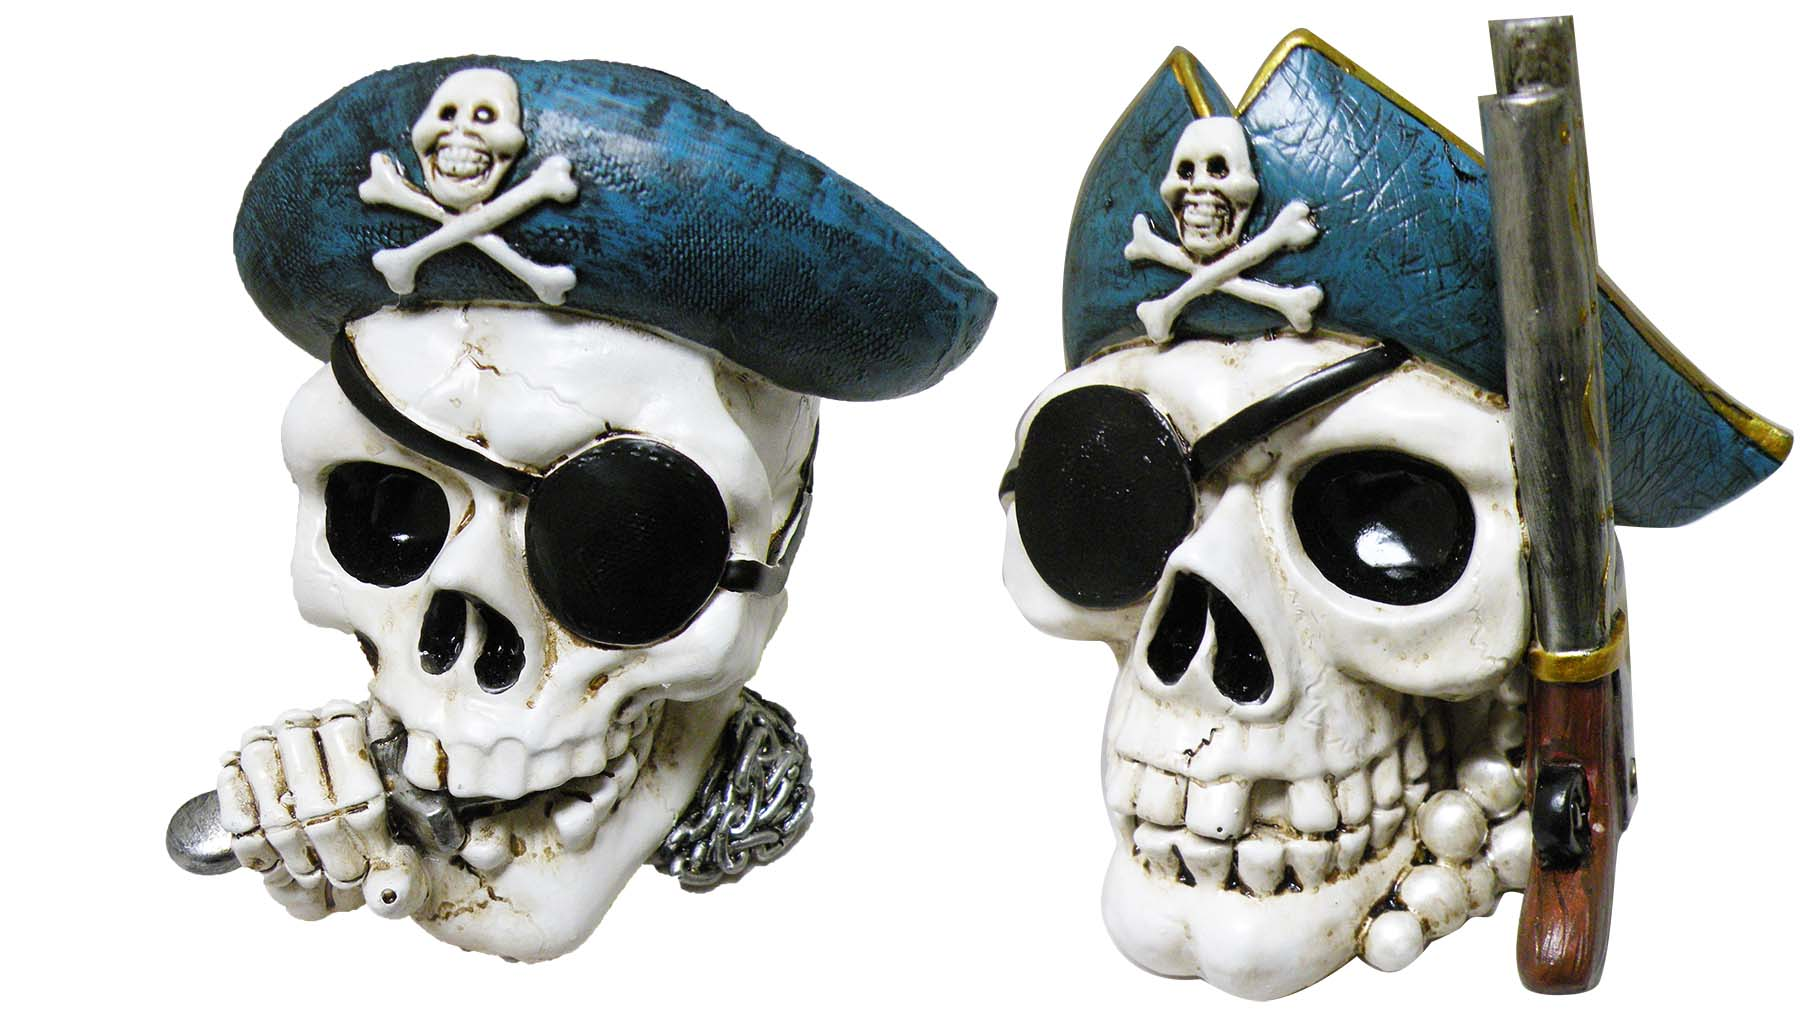 BANK POLY PIRATE SKULL * UOM: PC * Minimum Order:4